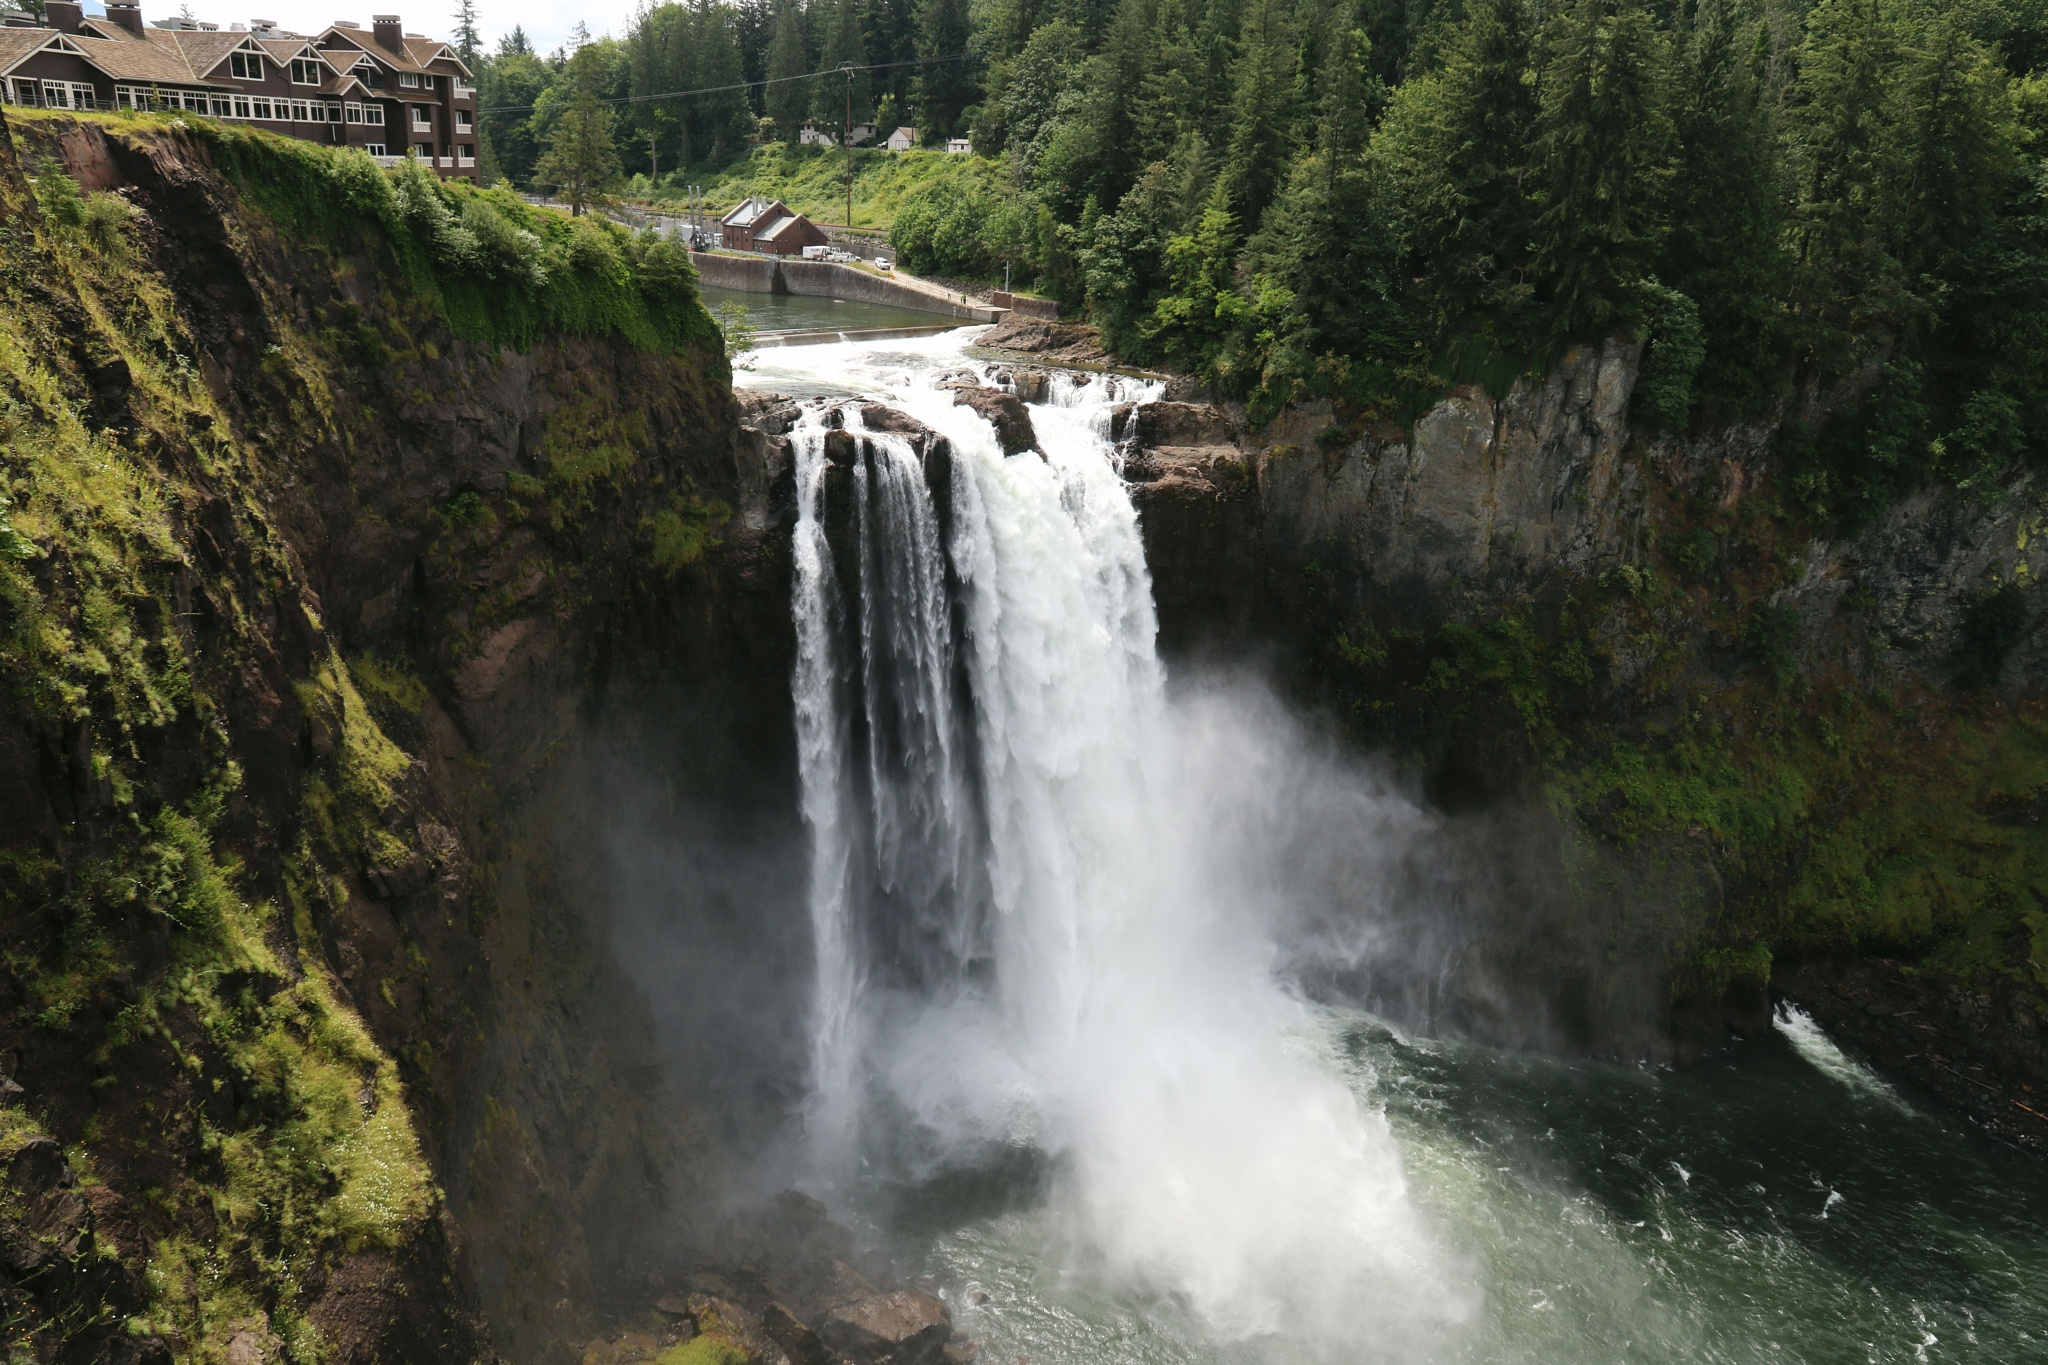 Snoqualmie Falls, Washington State by Jean-Marc Mont